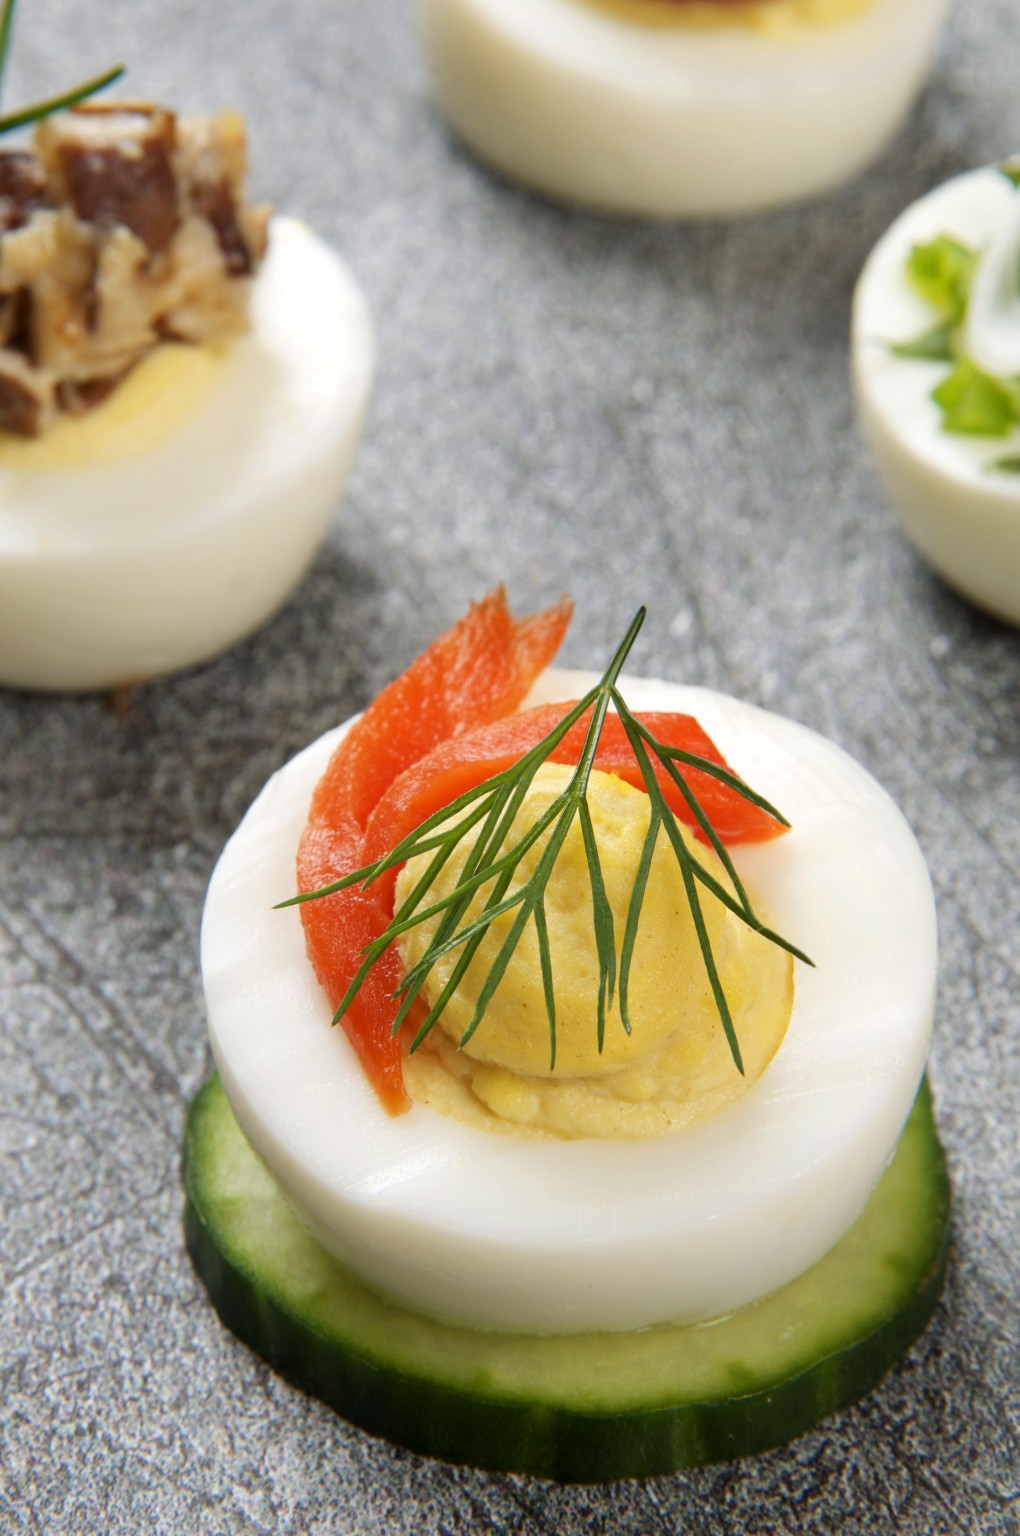 Deviled egg with smoked salmon and dill on a cucumber wheel. Photo by Donna Turner Ruhlman.